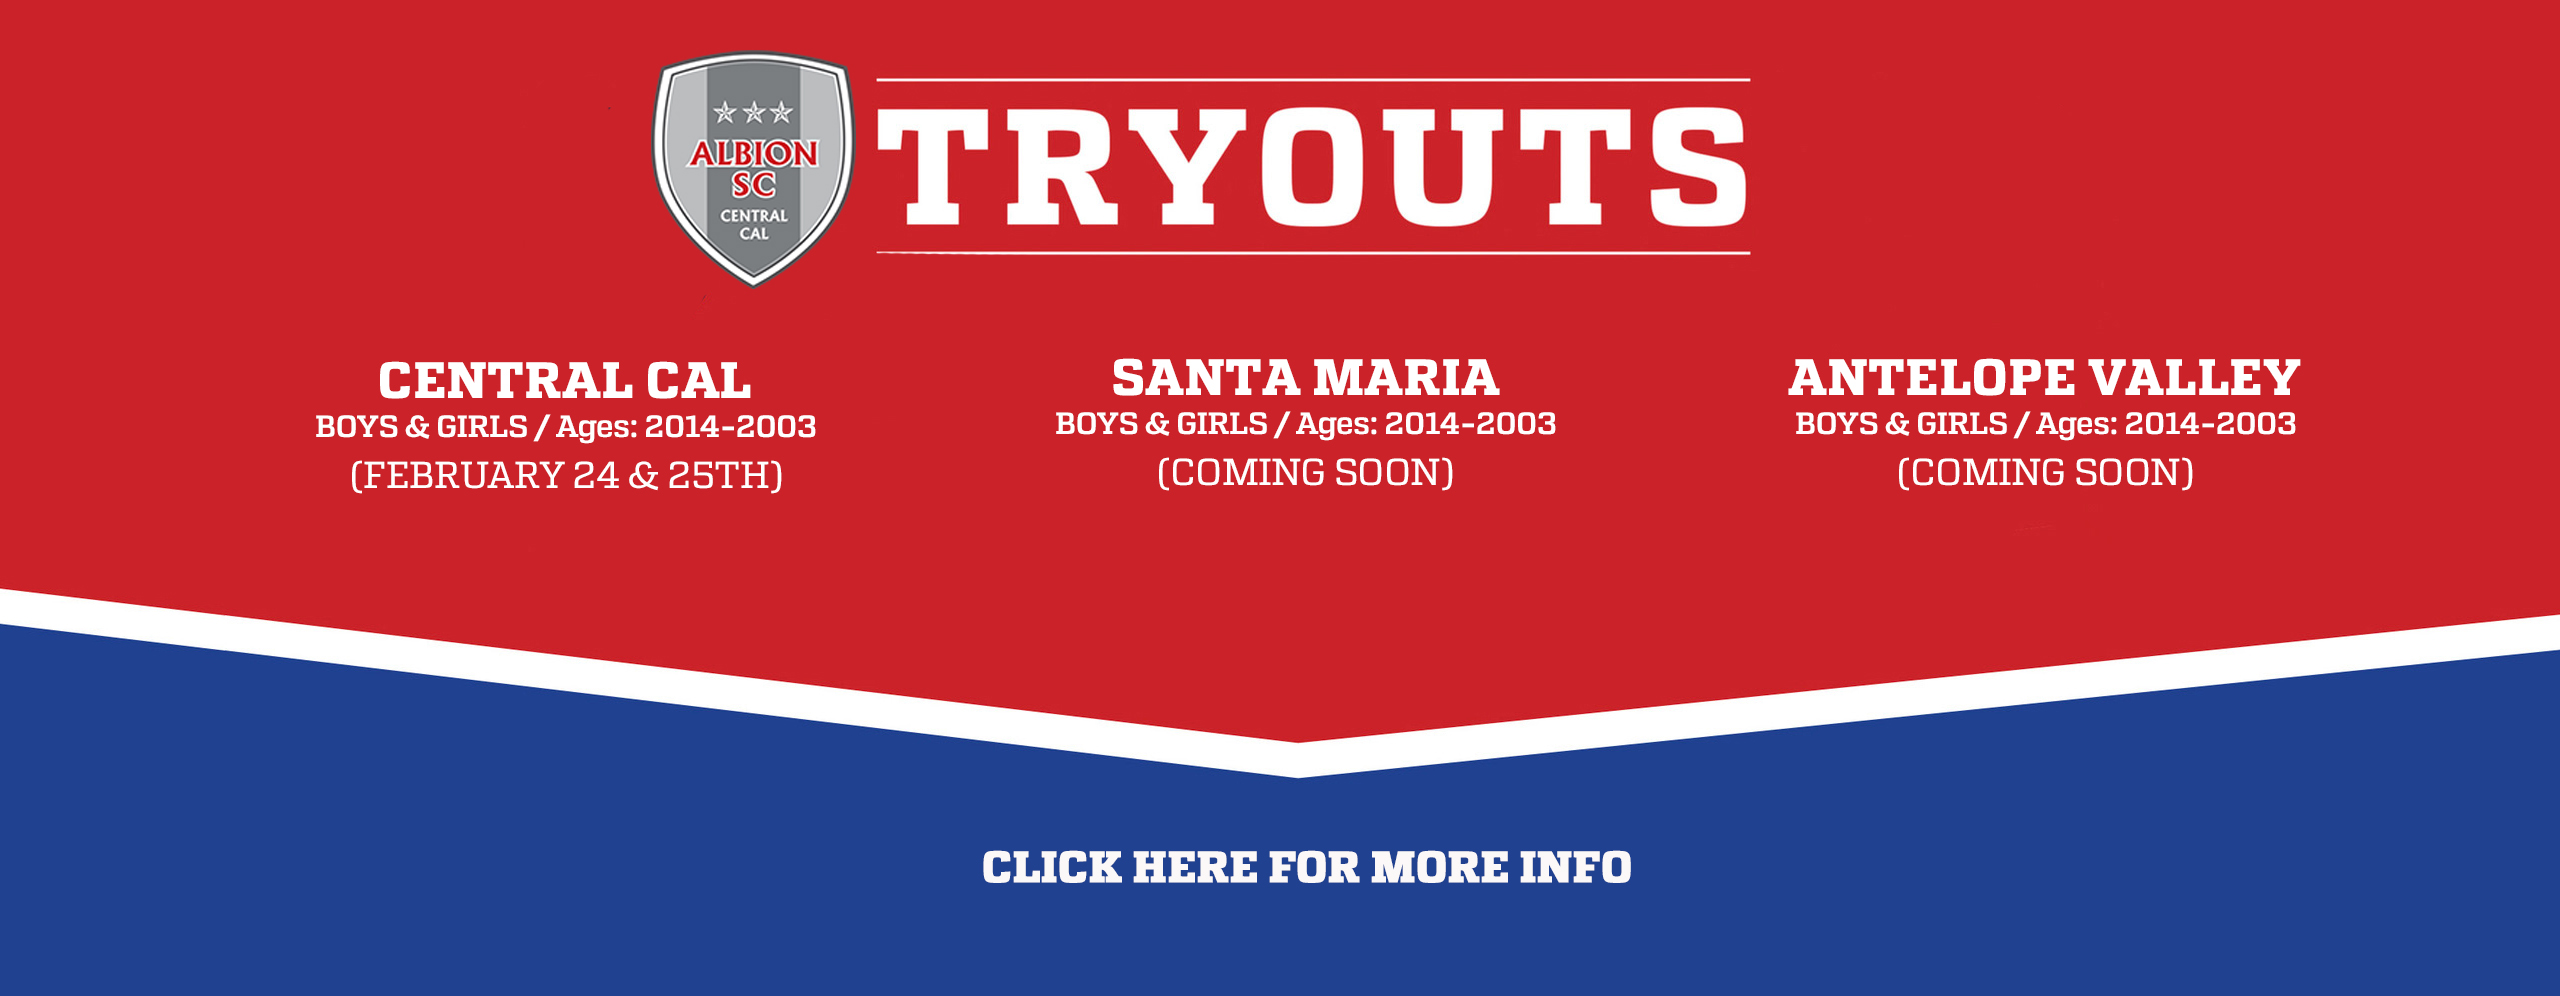 ALBION SC Central Cal TRYOUTS